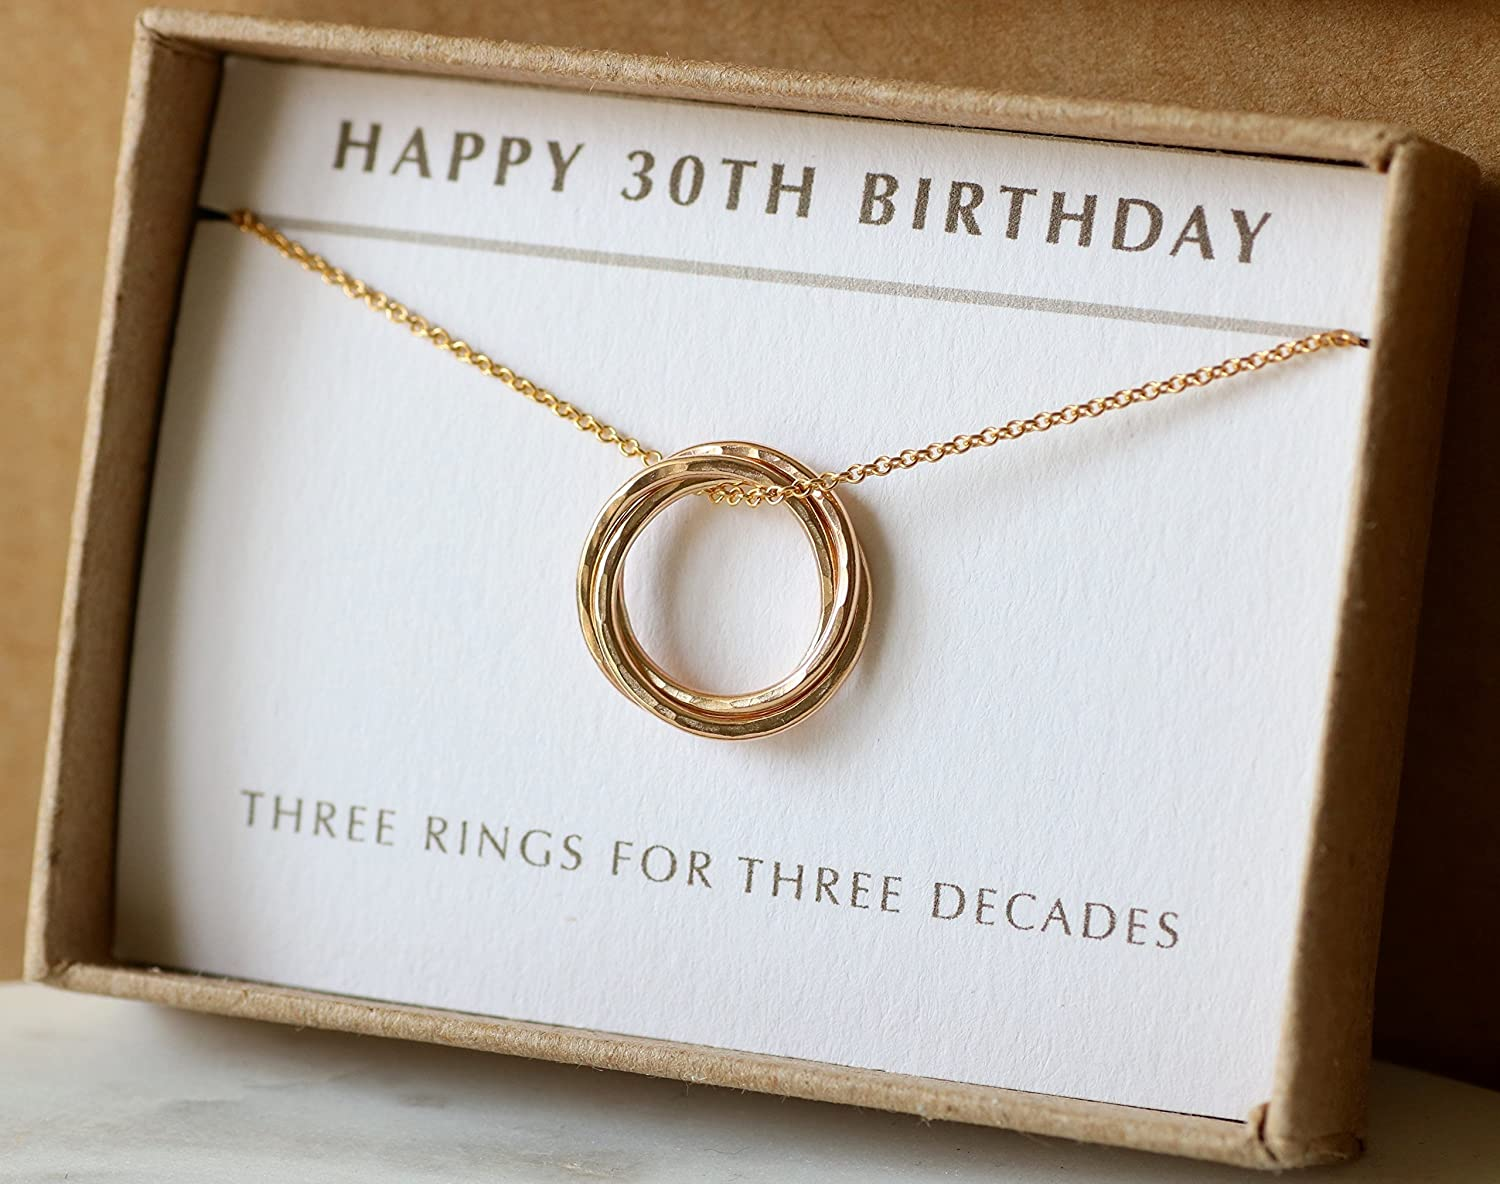 30th Birthday Gift For Her 3 Best Friend Idea Sister Dainty Gold Necklace